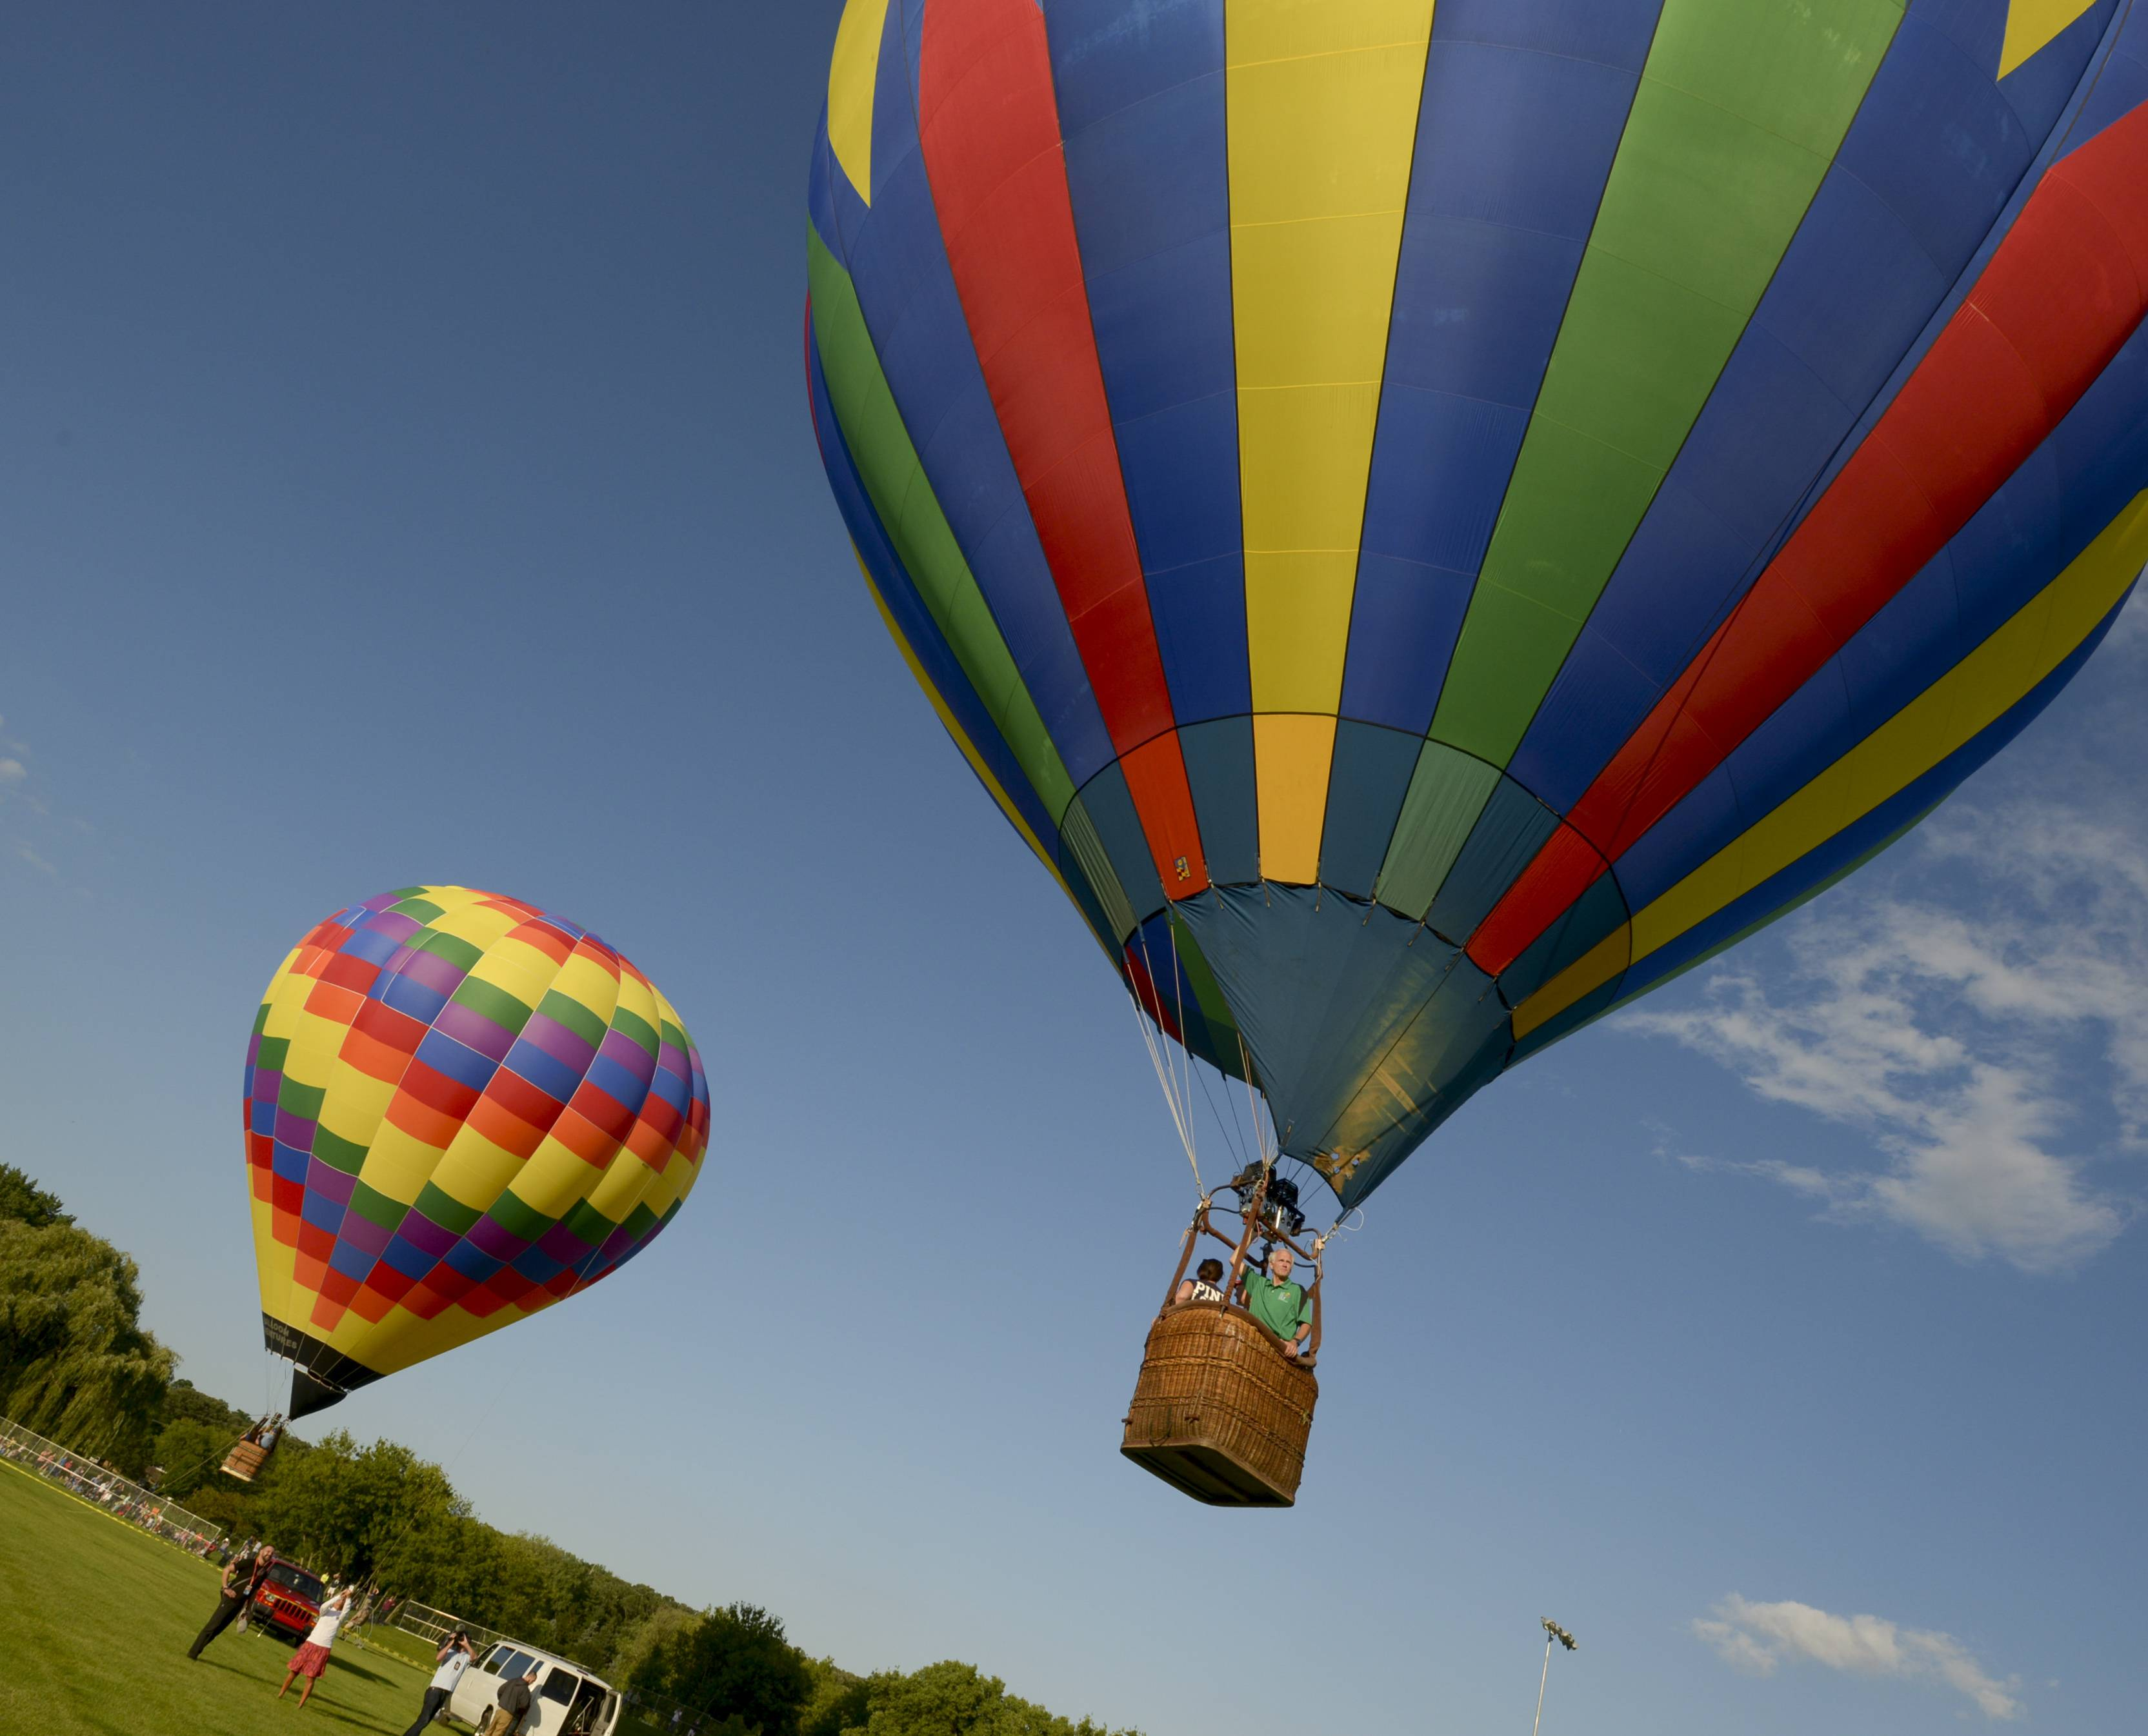 Hot-air balloons head into the sky on the first full day of Eyes to the Sky festival in Lisle.